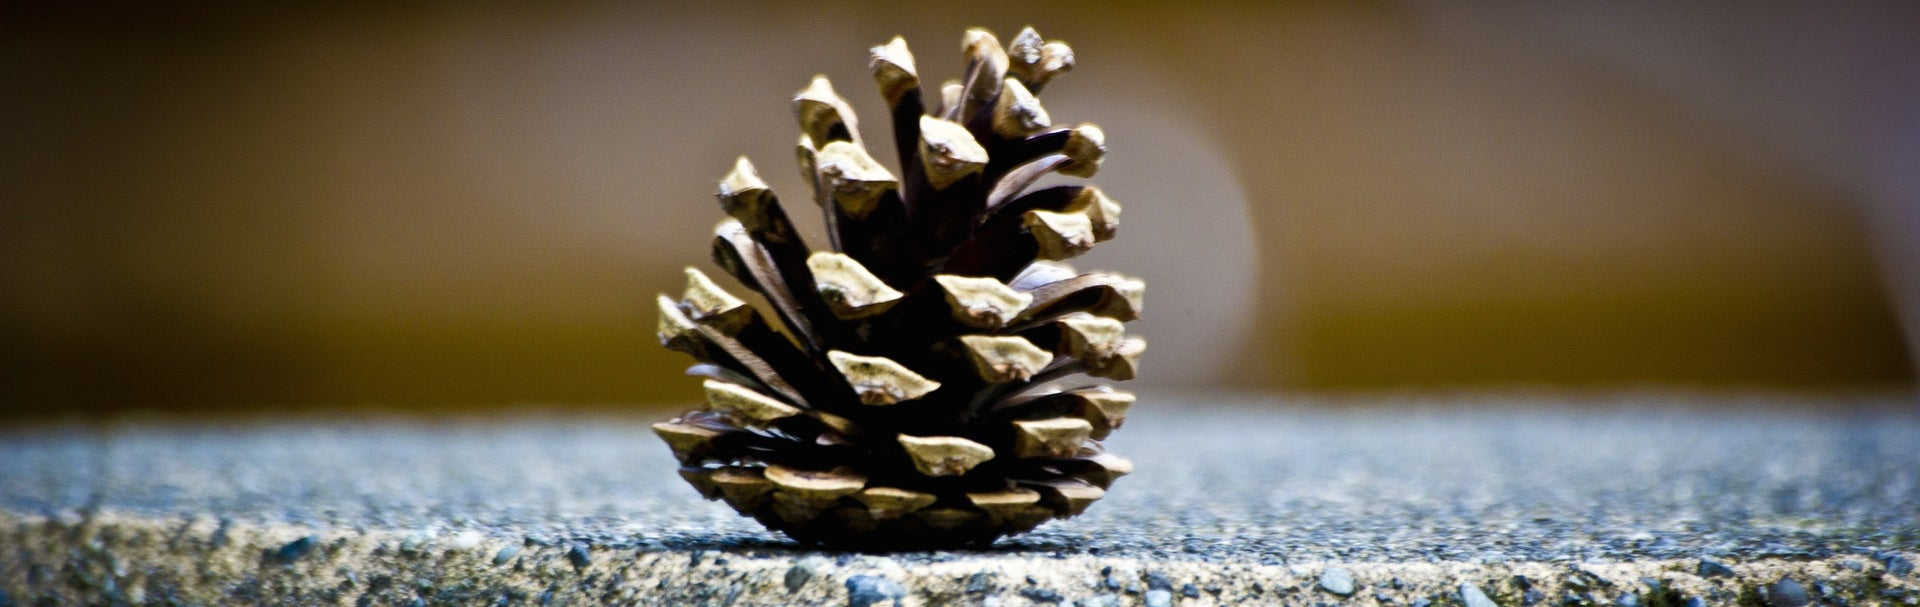 Pinecones could help make buildings more energy efficient